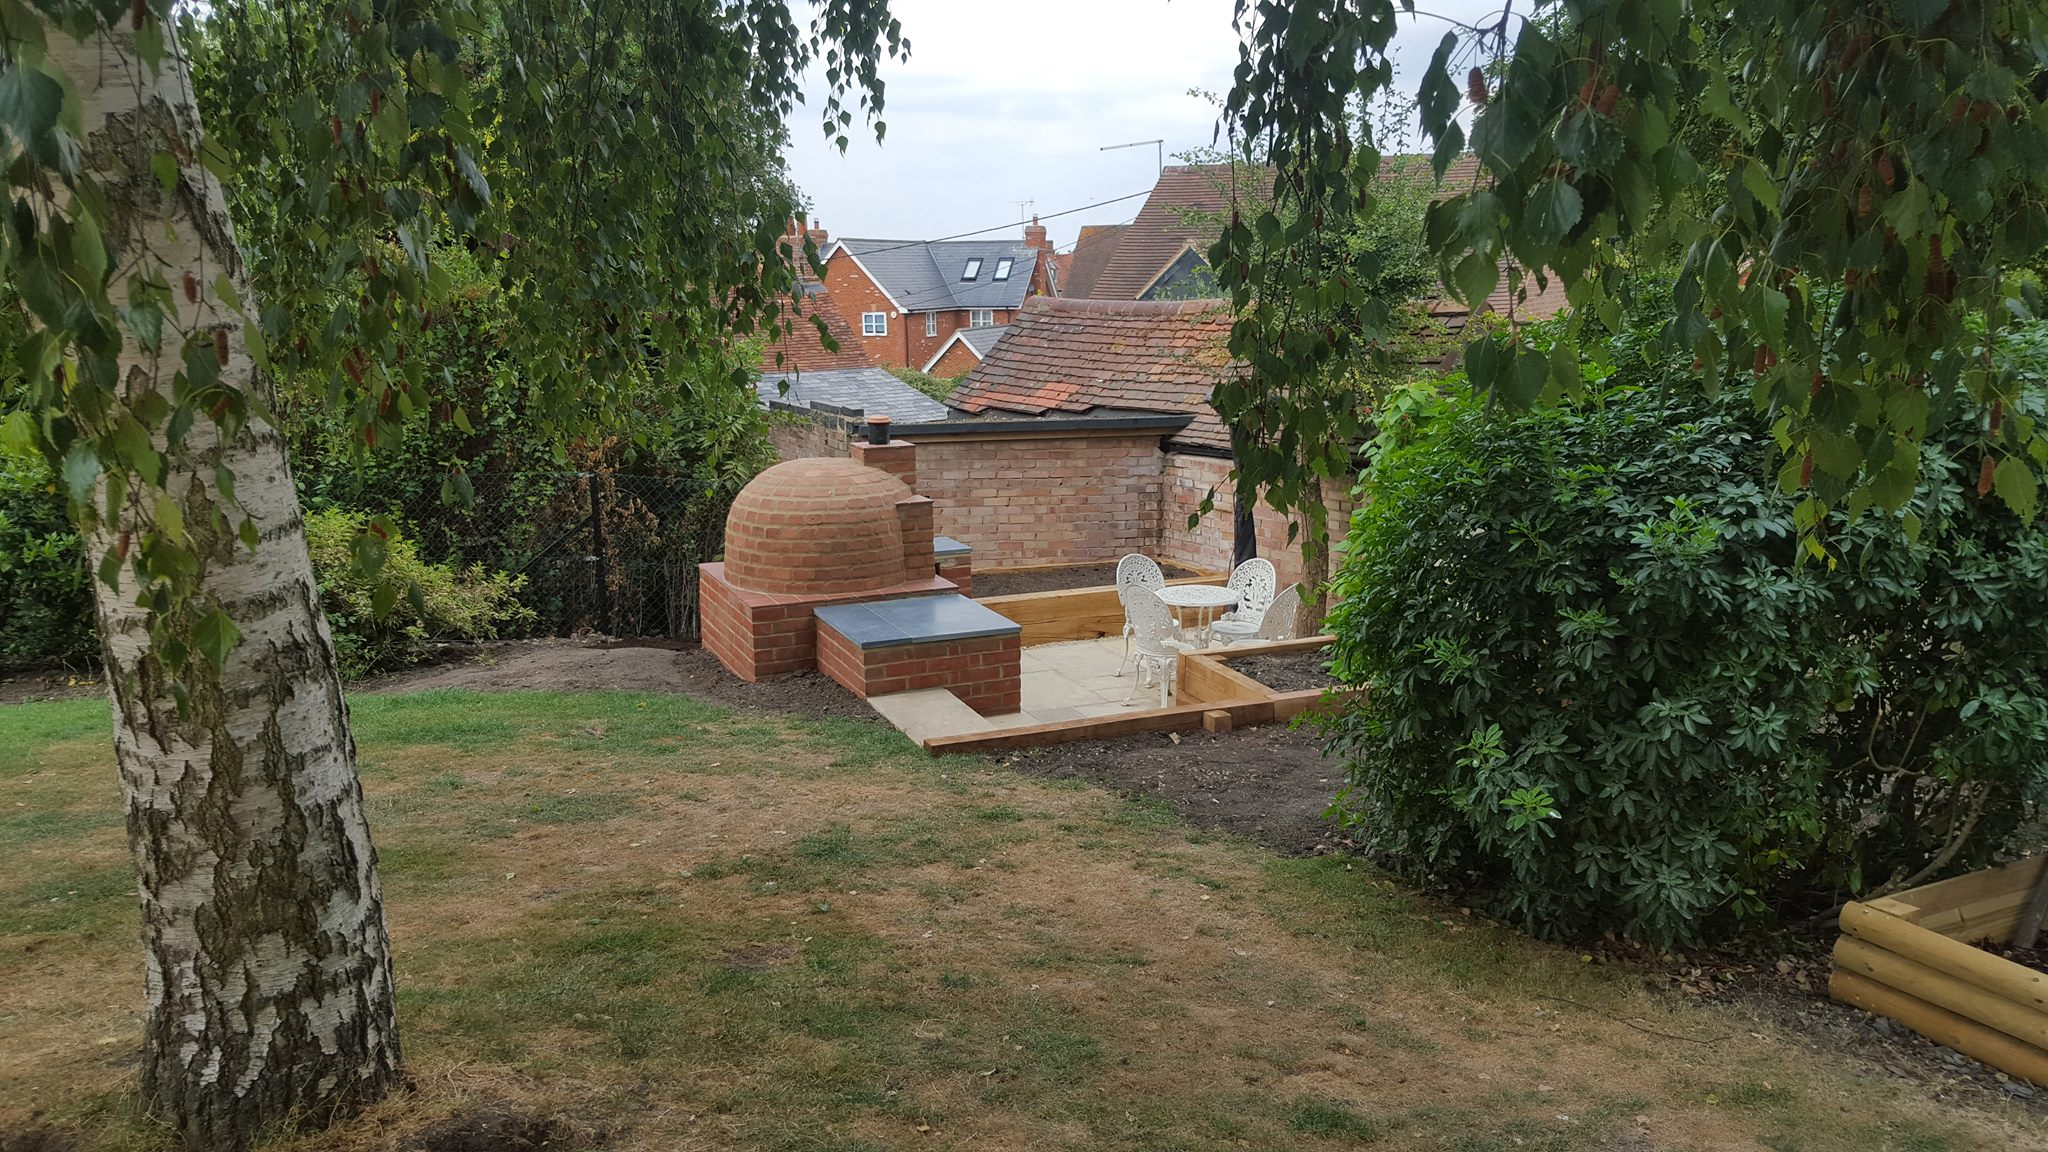 Job in Thame - Sunken area with a pizza oven